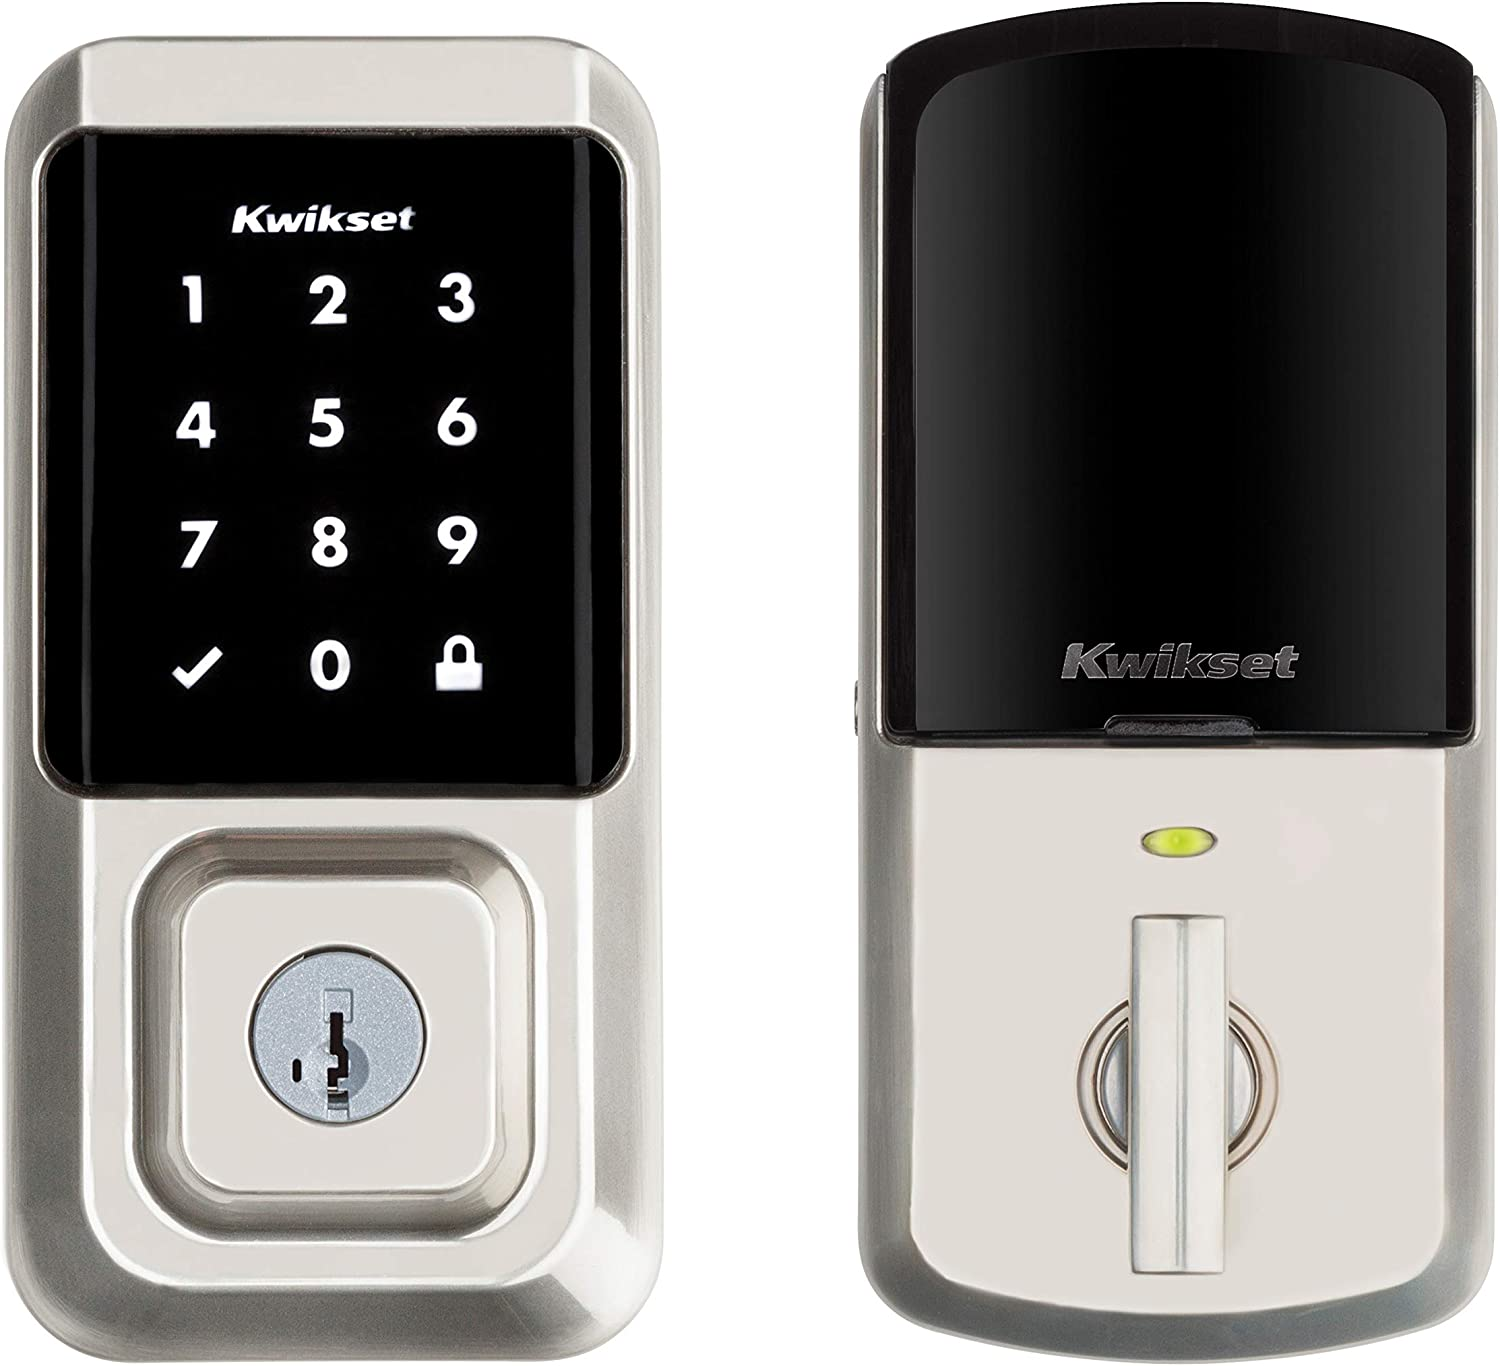 Polished Chrome Kwikset 99390-003 Halo Wi-Fi Smart Lock Keyless Entry Electronic Touchscreen Deadbolt Featuring SmartKey Security